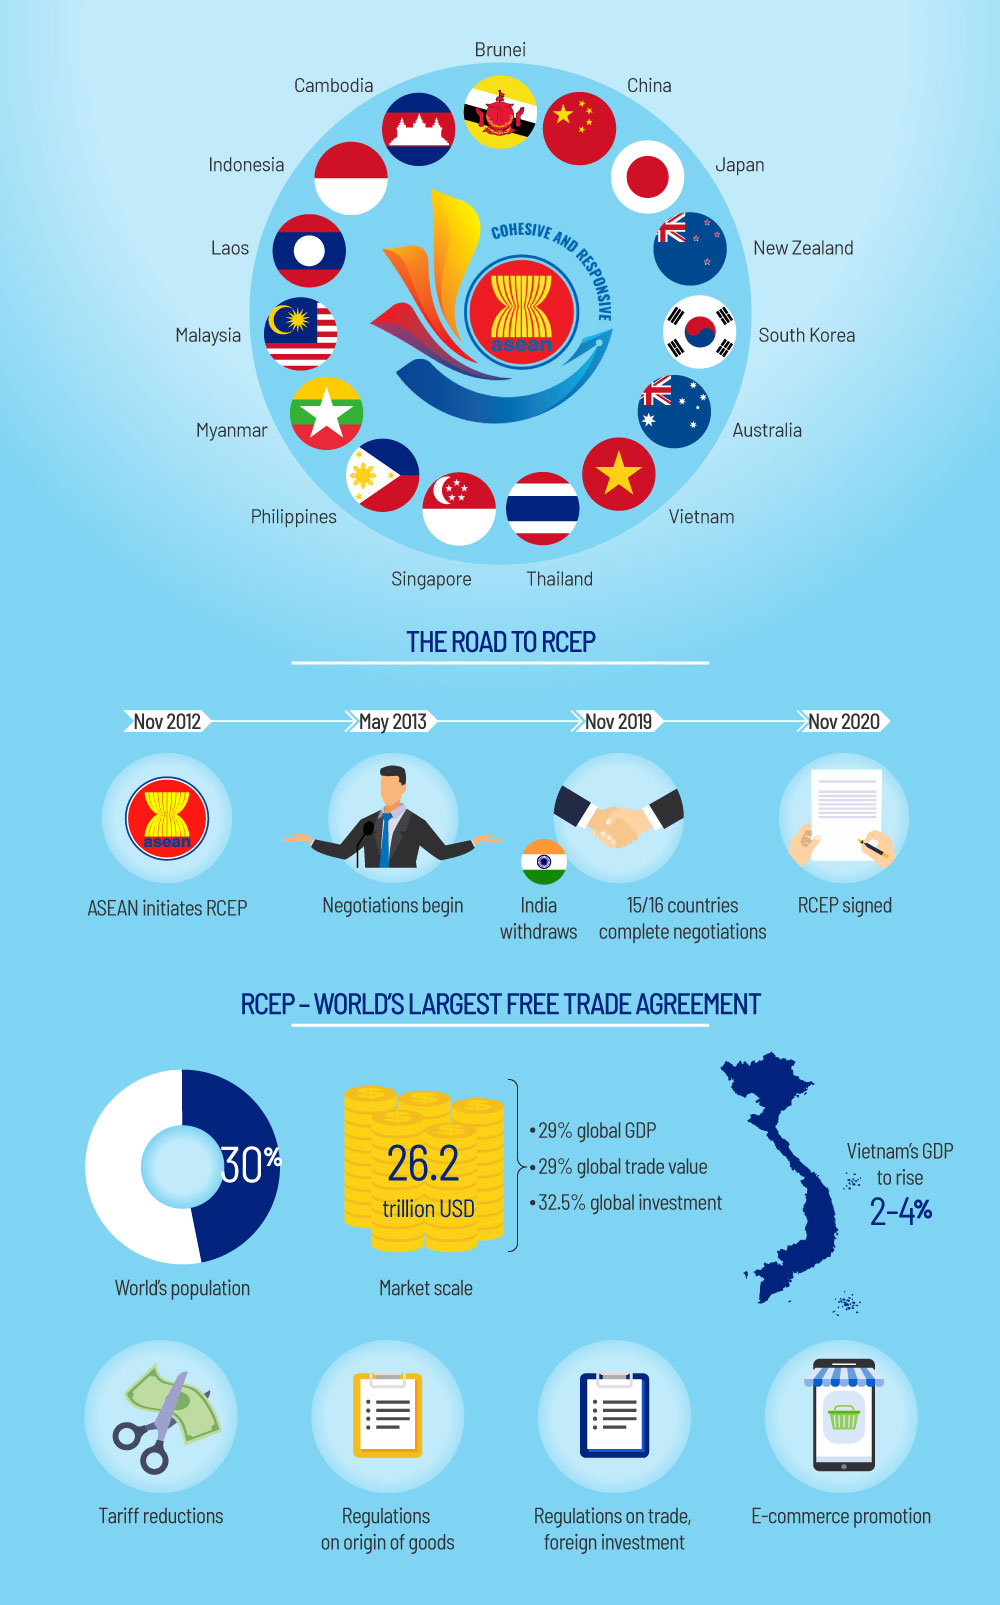 World's largest trade pact, RCEP, facts and figures, takes effect, Regional Comprehensive Economic Partnership